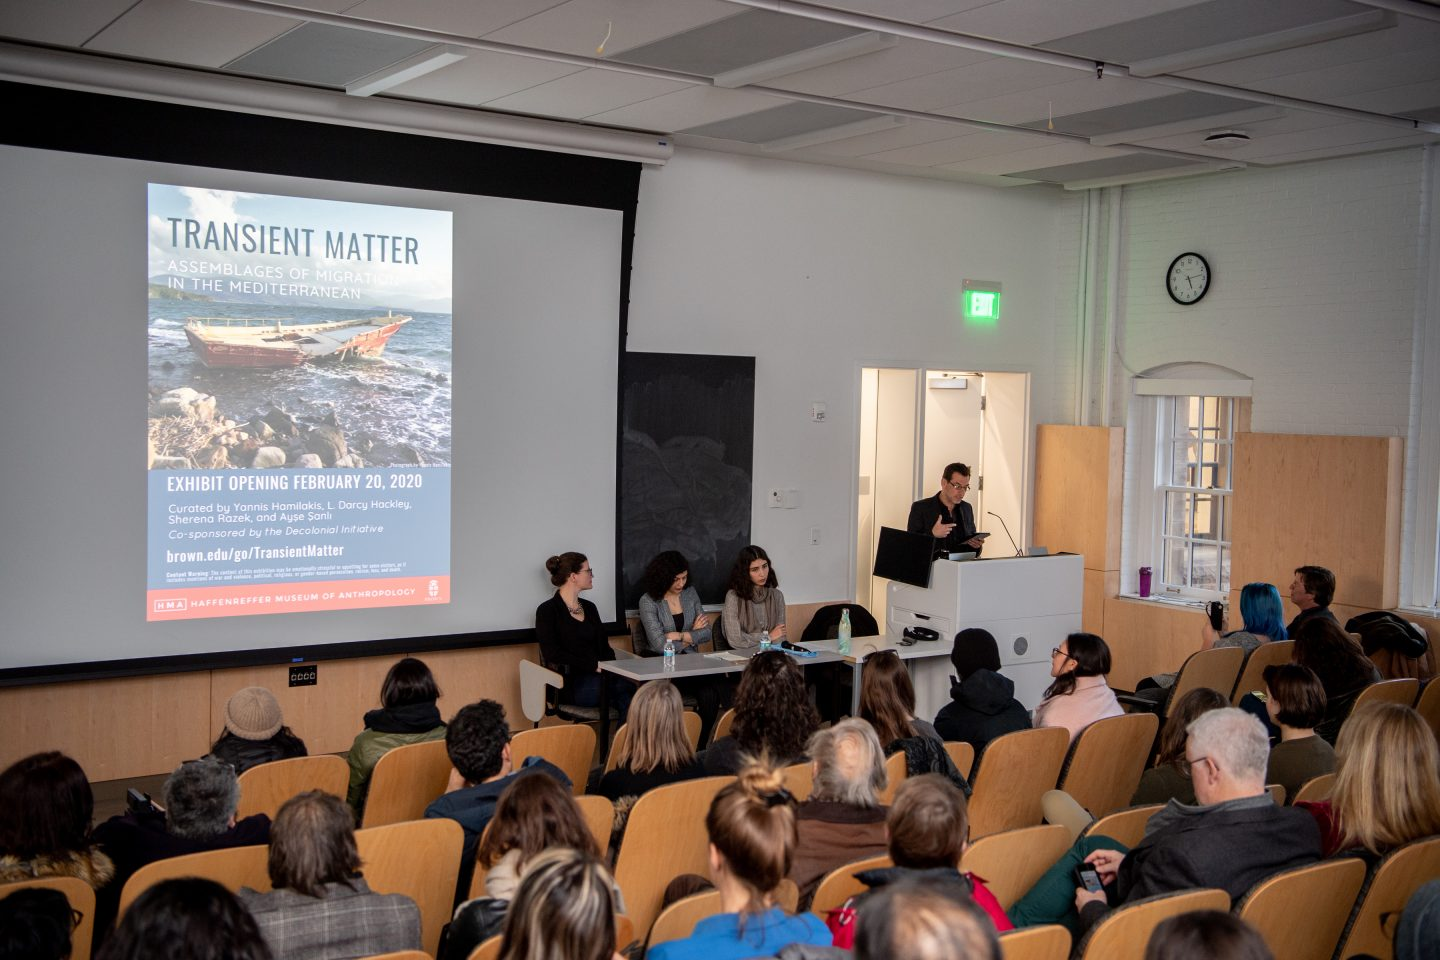 Photo of Curators Talk, including people seated in a lecture hall listening to the curators present.